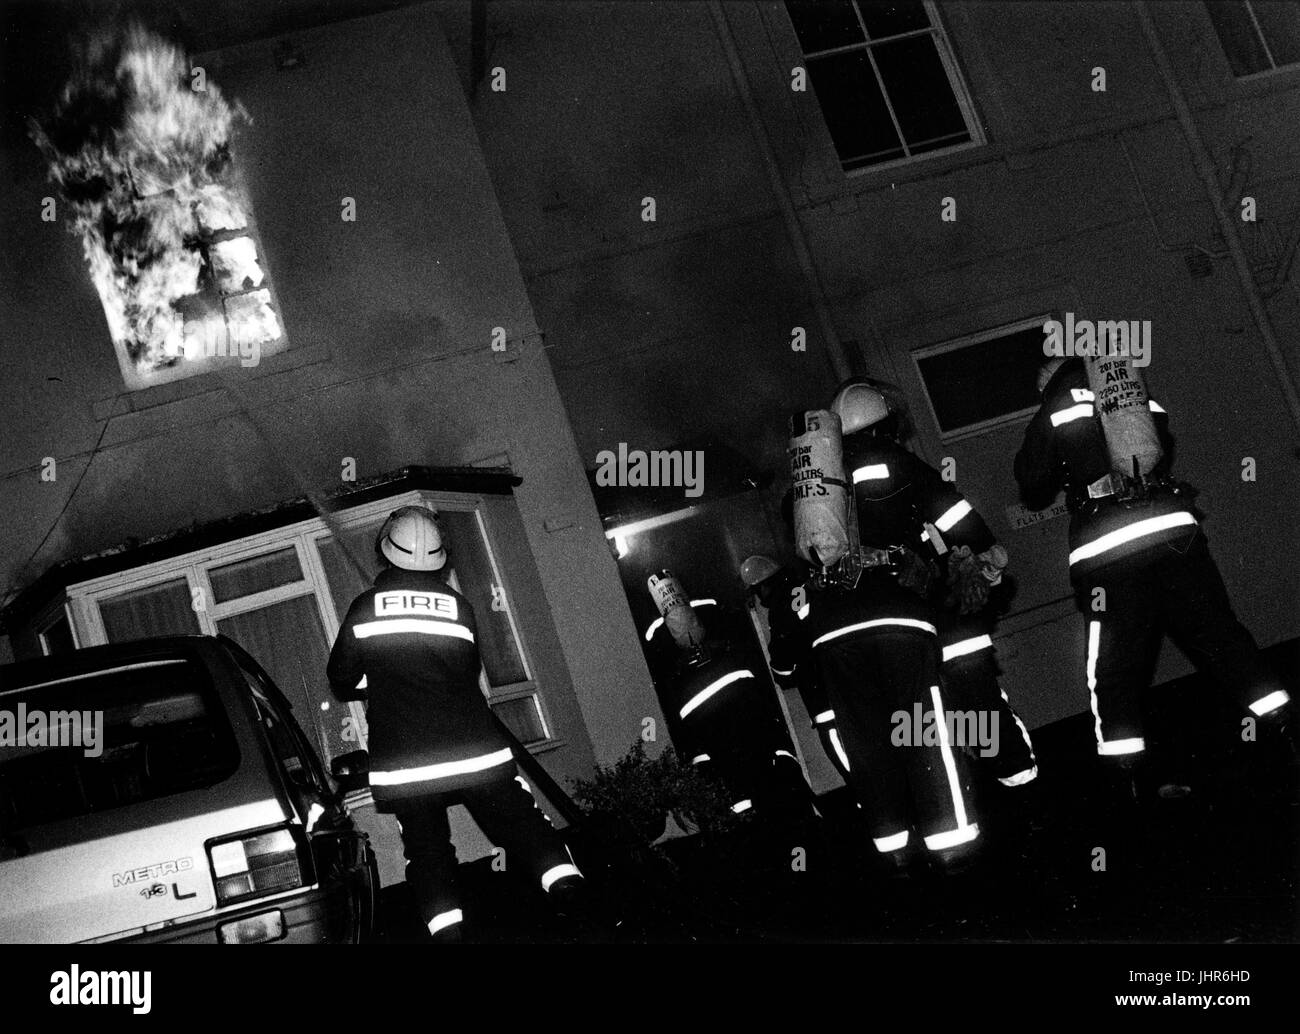 Fire Fighters of West Midlands Fire Brigade enter burning building in search of a 'persons reported' - Stock Image